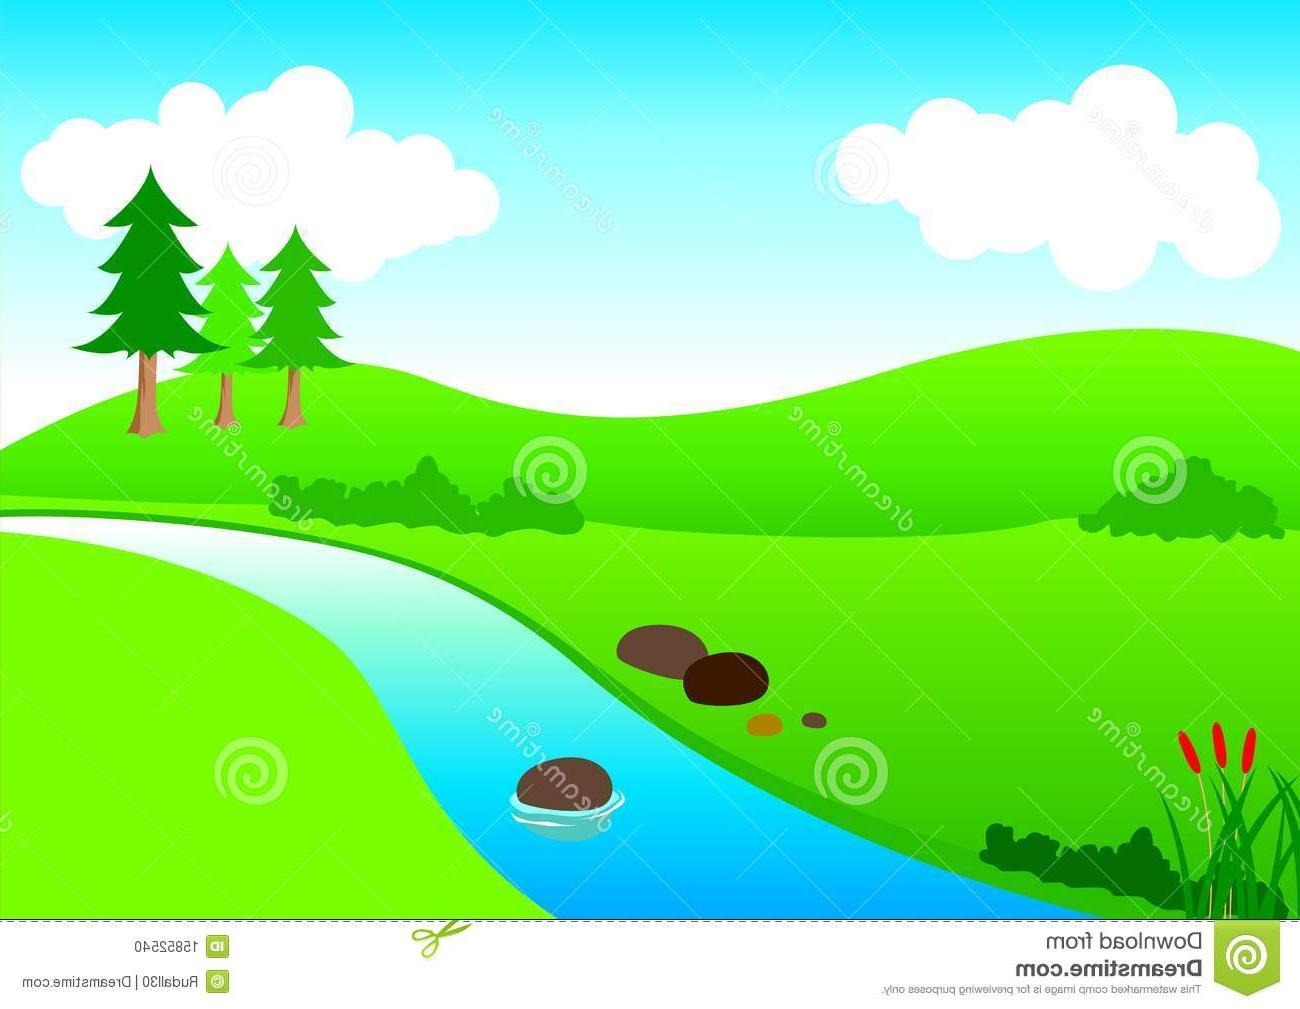 winding river shape clipart #5